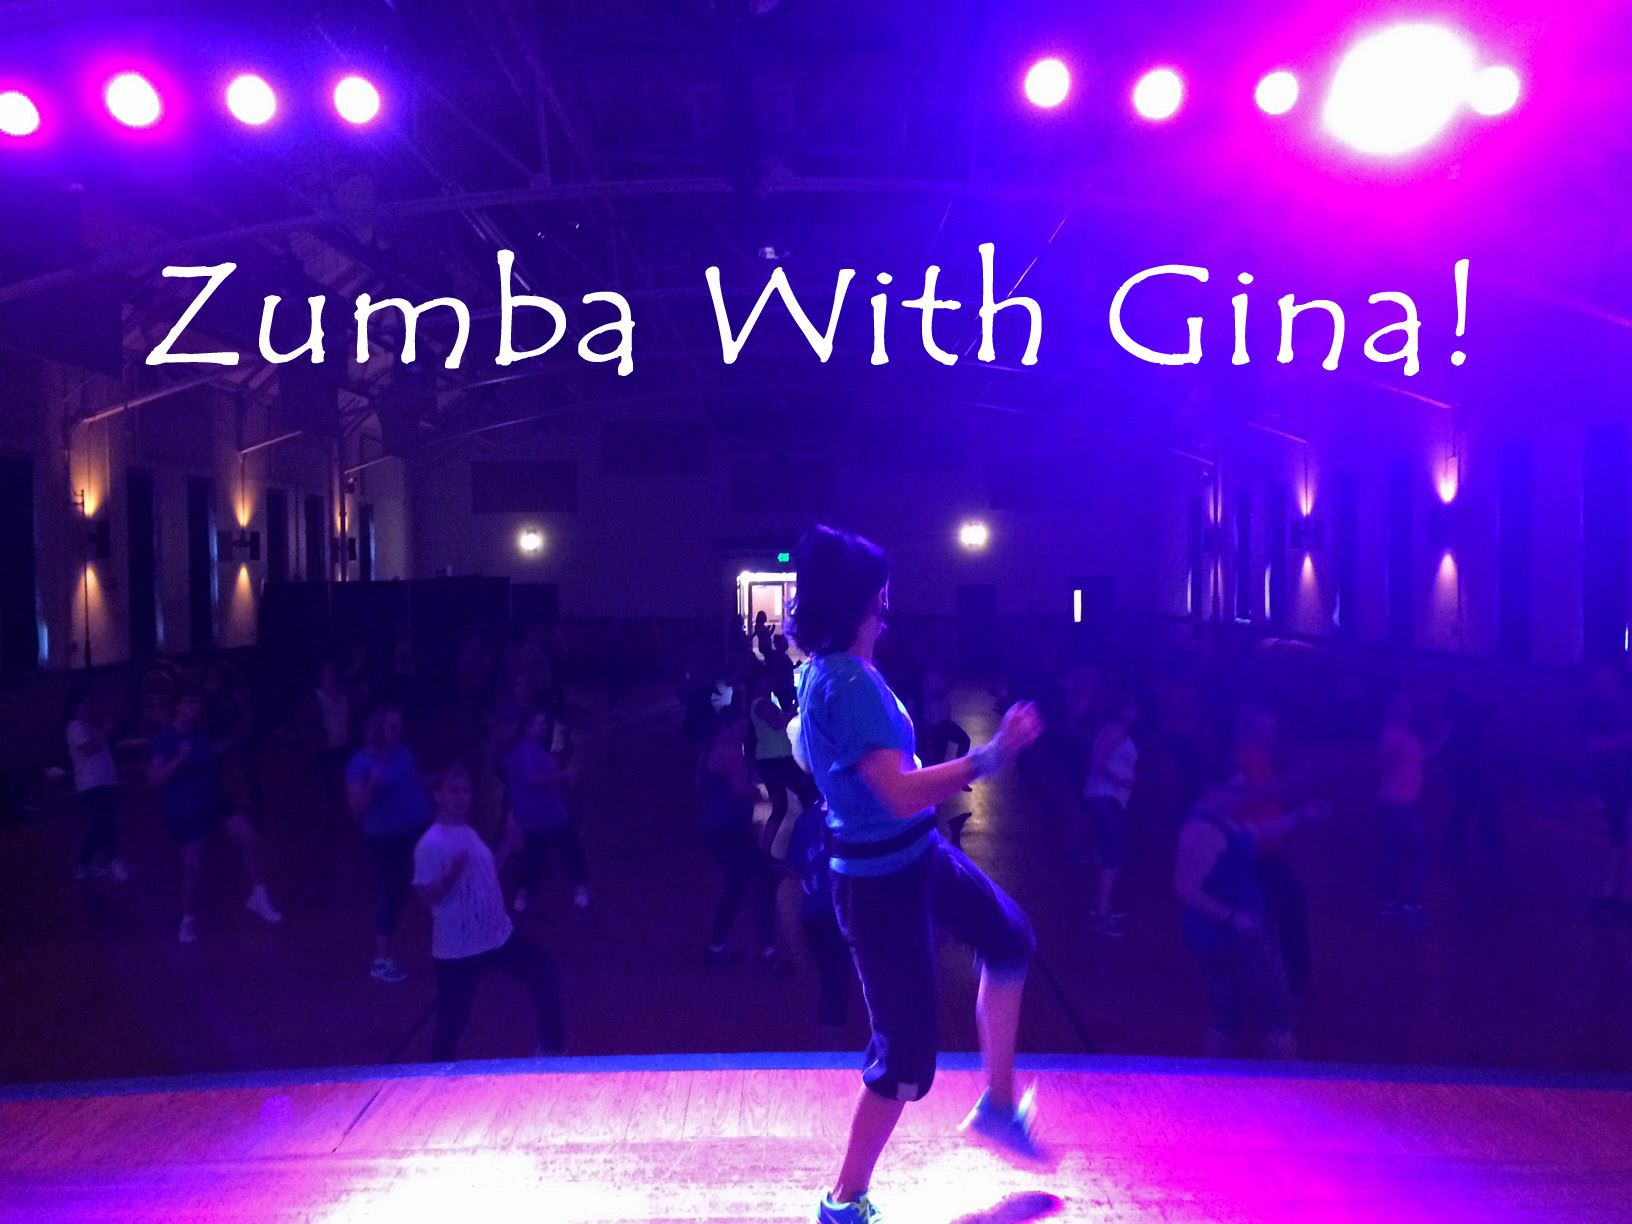 Zumba with Gina Pic